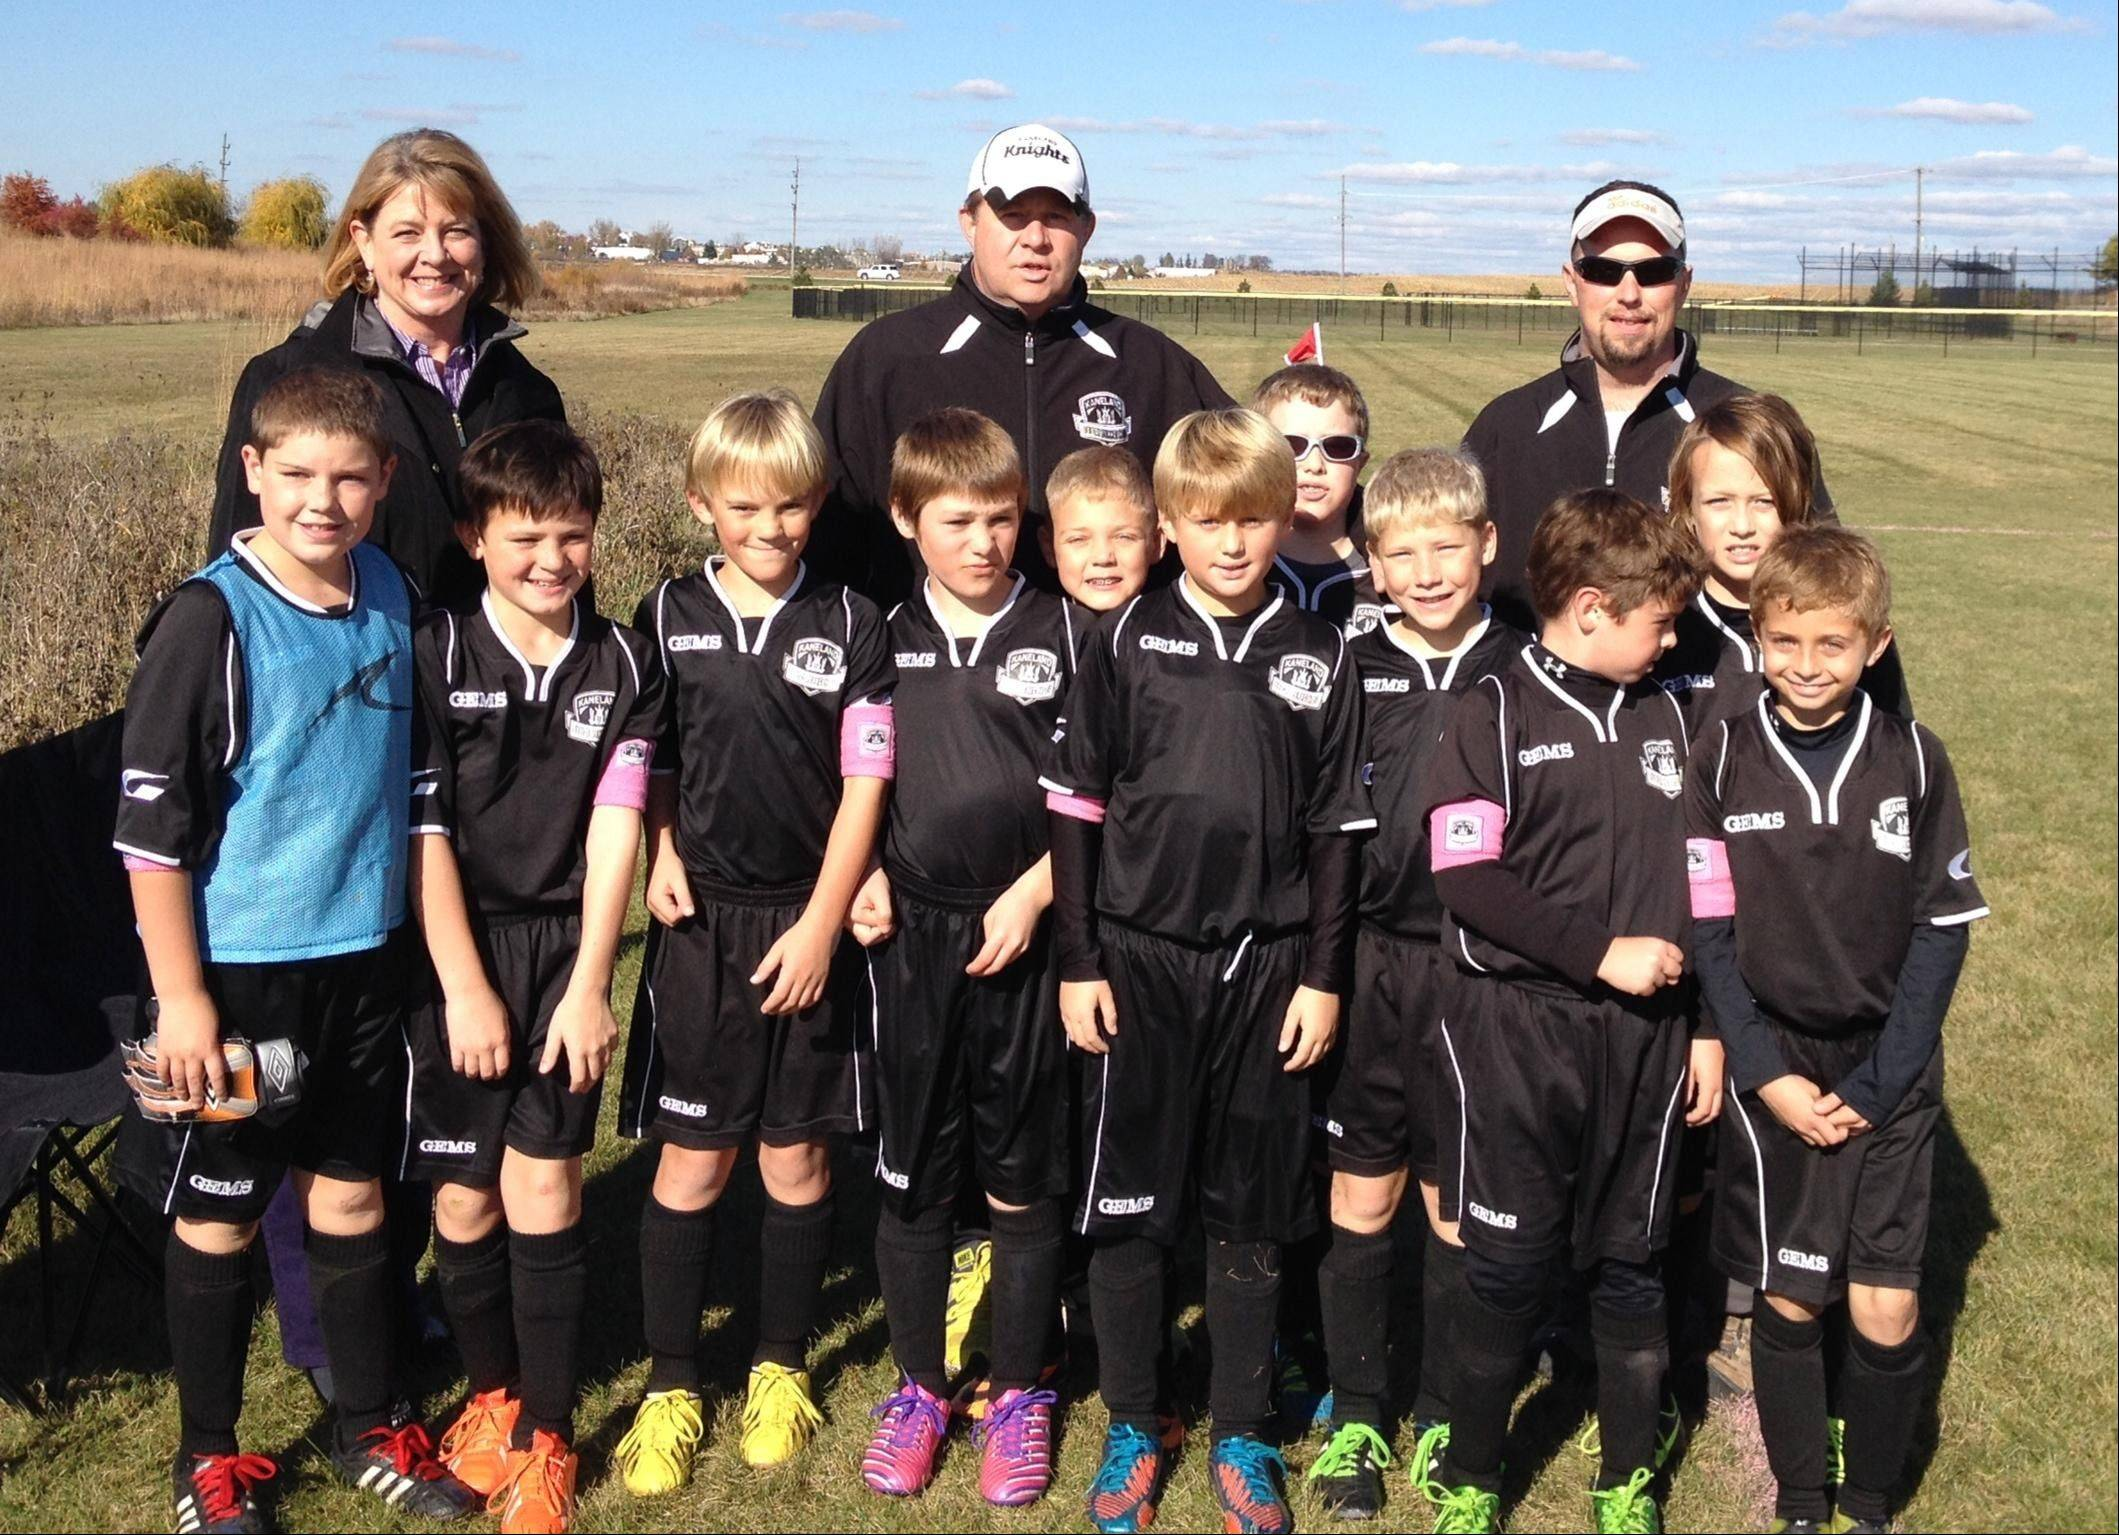 Kaneland High principal Jill Maras, left, on behalf of recipient Bridget Sweeney, thanks the Kaneland United Soccer Club for the Think Pink fundraiser. Pictured are: from left, front row, Lucas Pehl, Jake Guernon, Cade Ory, Sean Gannon, Nick Cummings, Nick Mitchinson, Joshua Pehl, Nicky Montalbano, Will Sand, Ryan Nudo; and back row, coach Mike Mitchinson, Jack Rissman and assistant coach Joel Rissman.